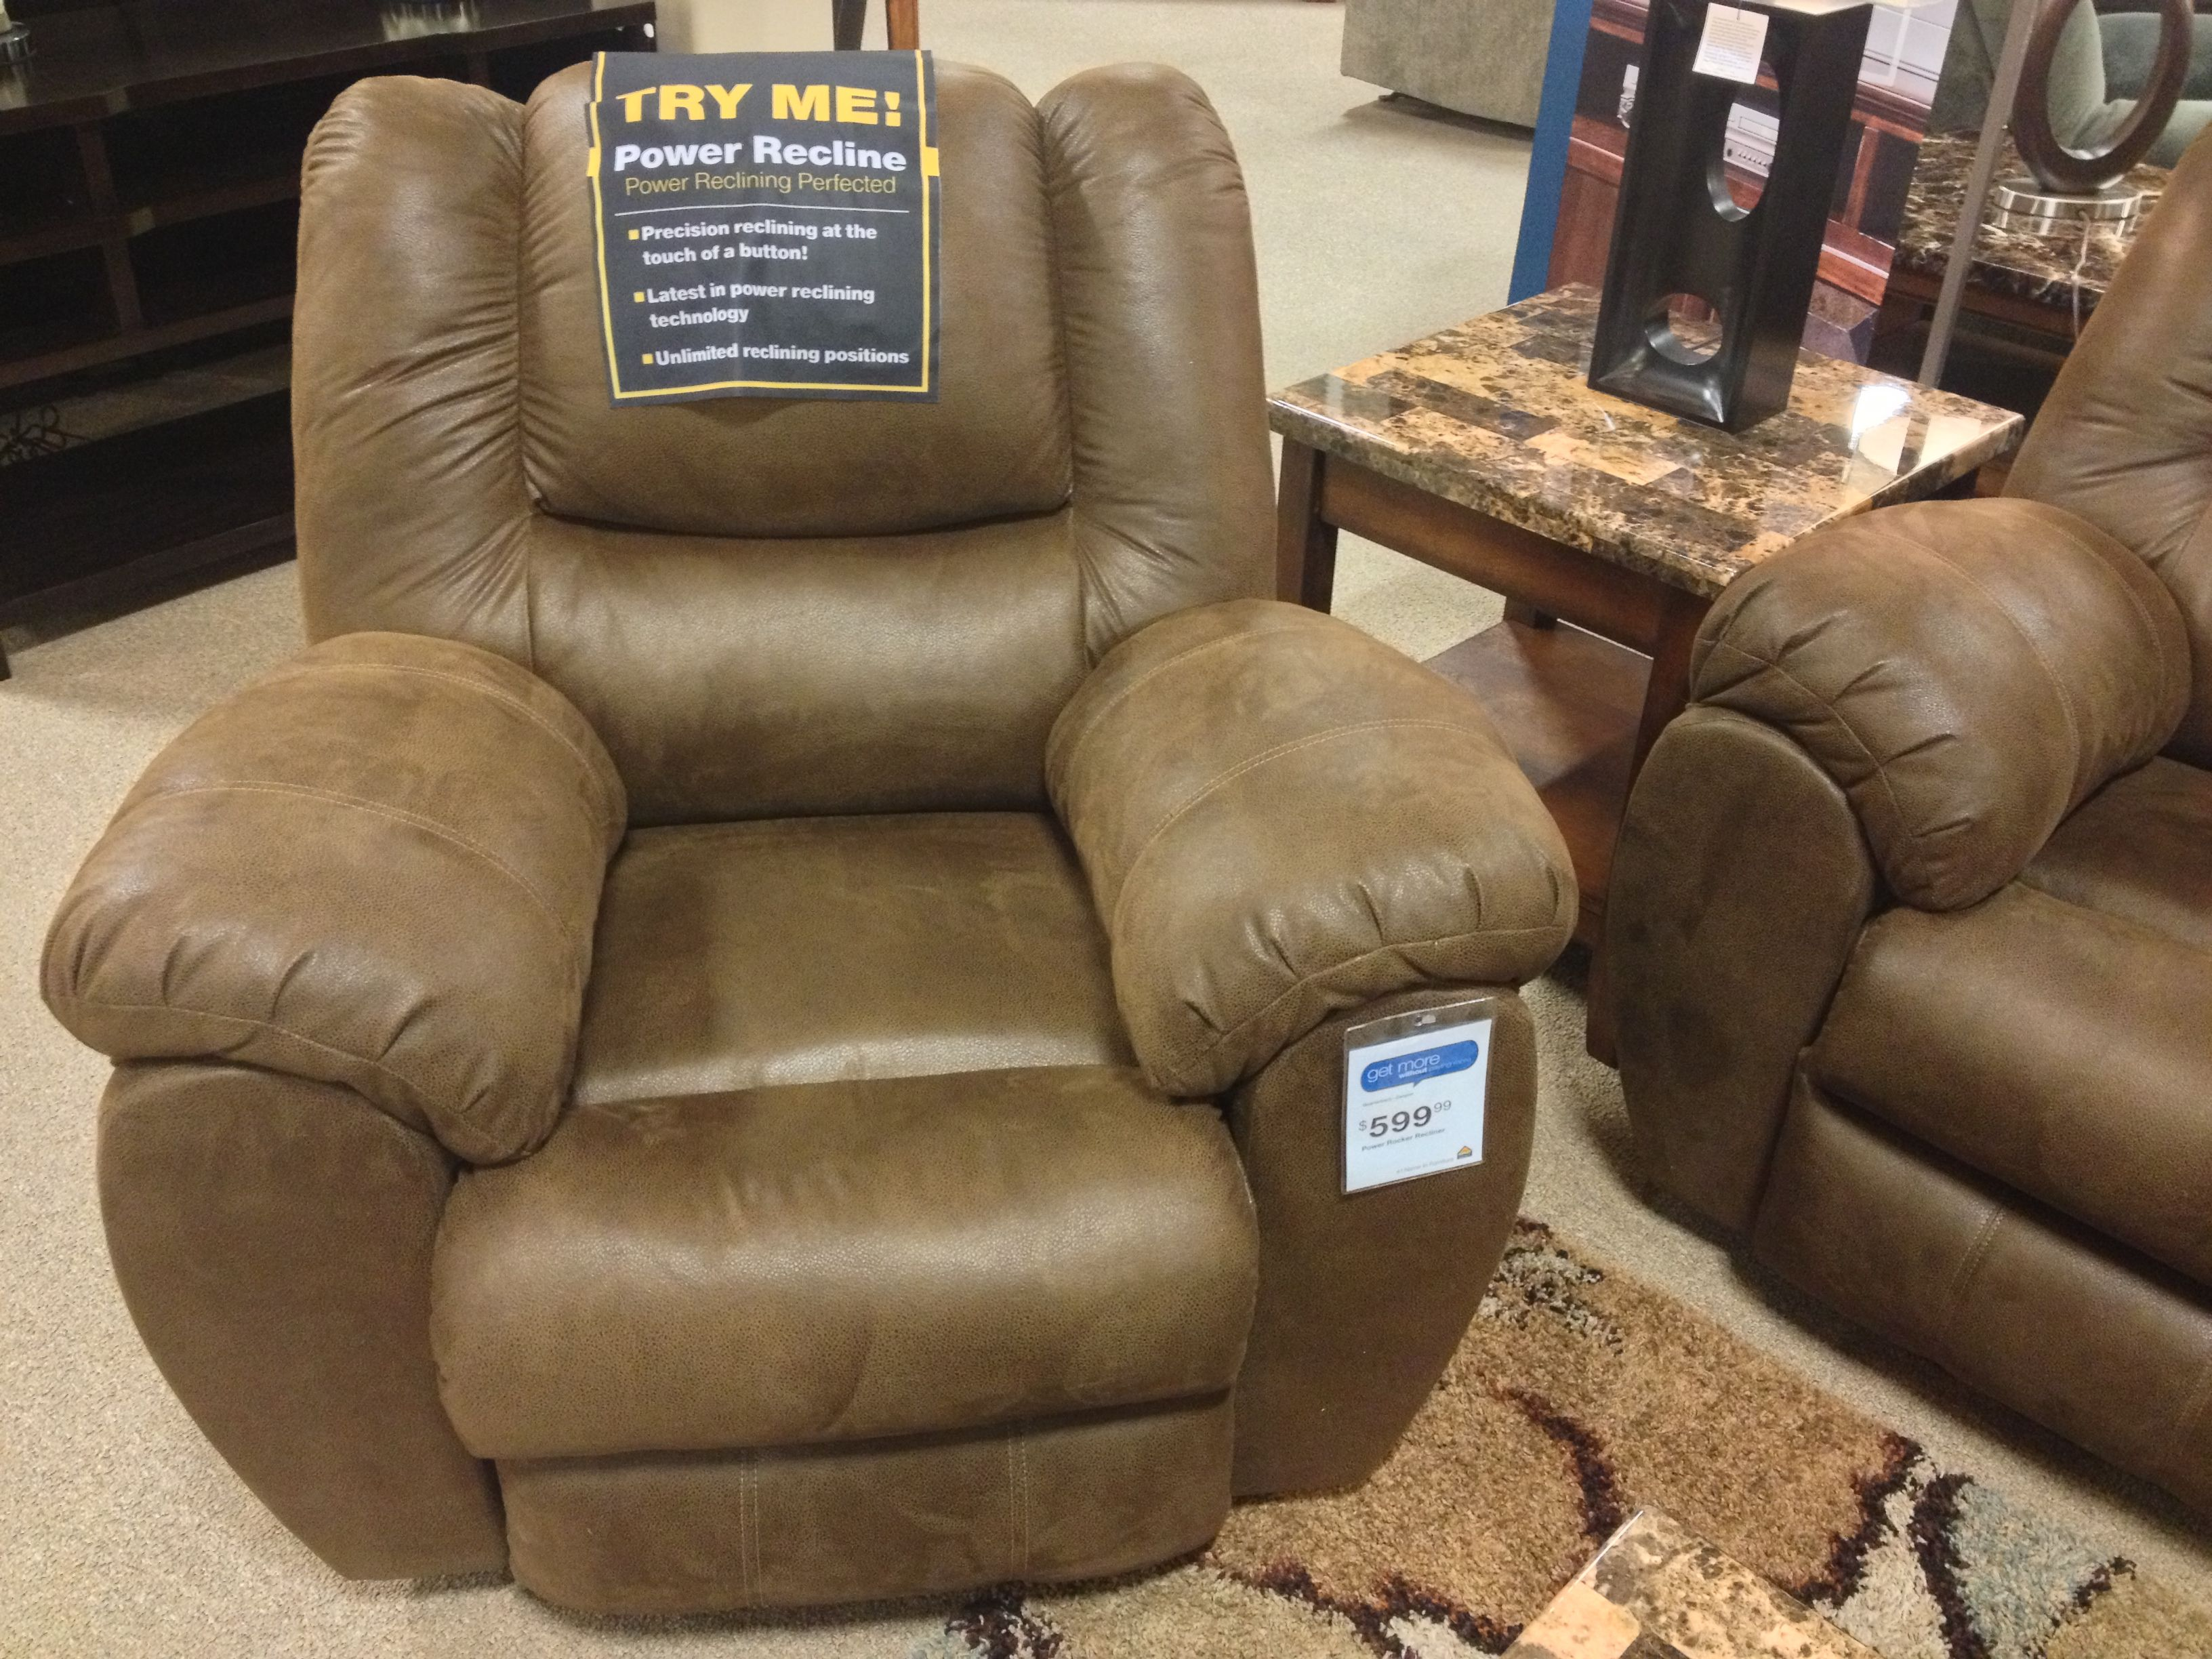 Quarterback Canyon Power Rocker Recliner Chair At Your Ashley